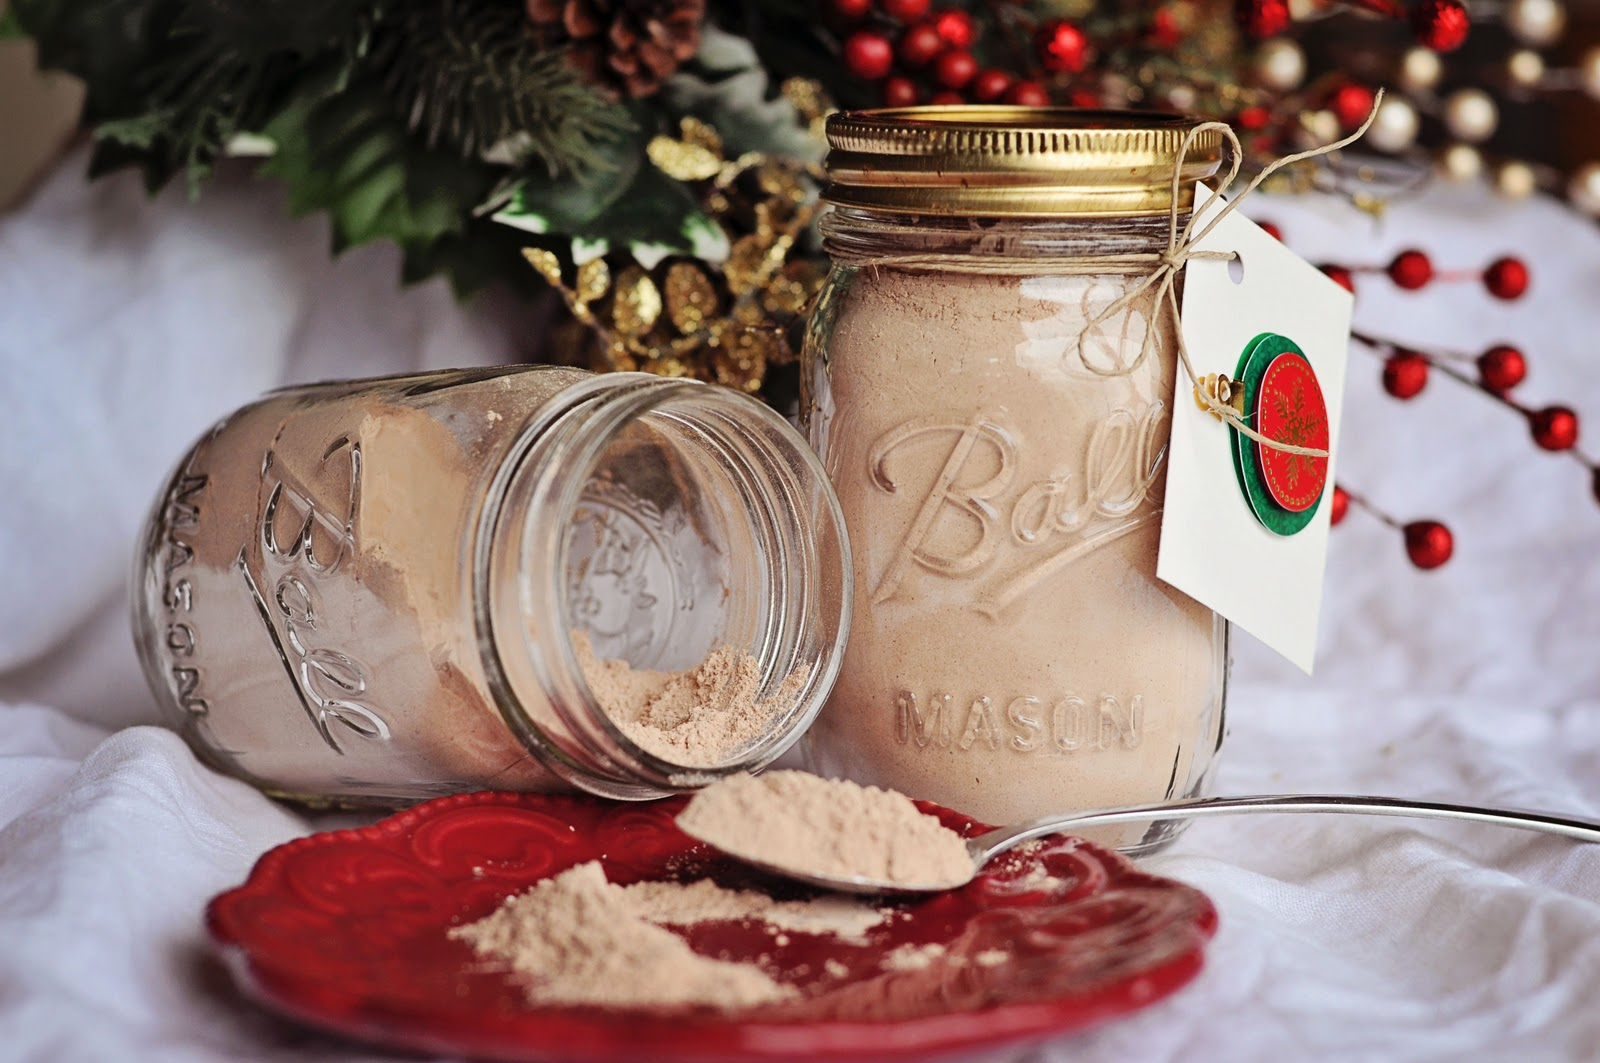 Barefoot and Baking: Mexican Hot Chocolate Mix